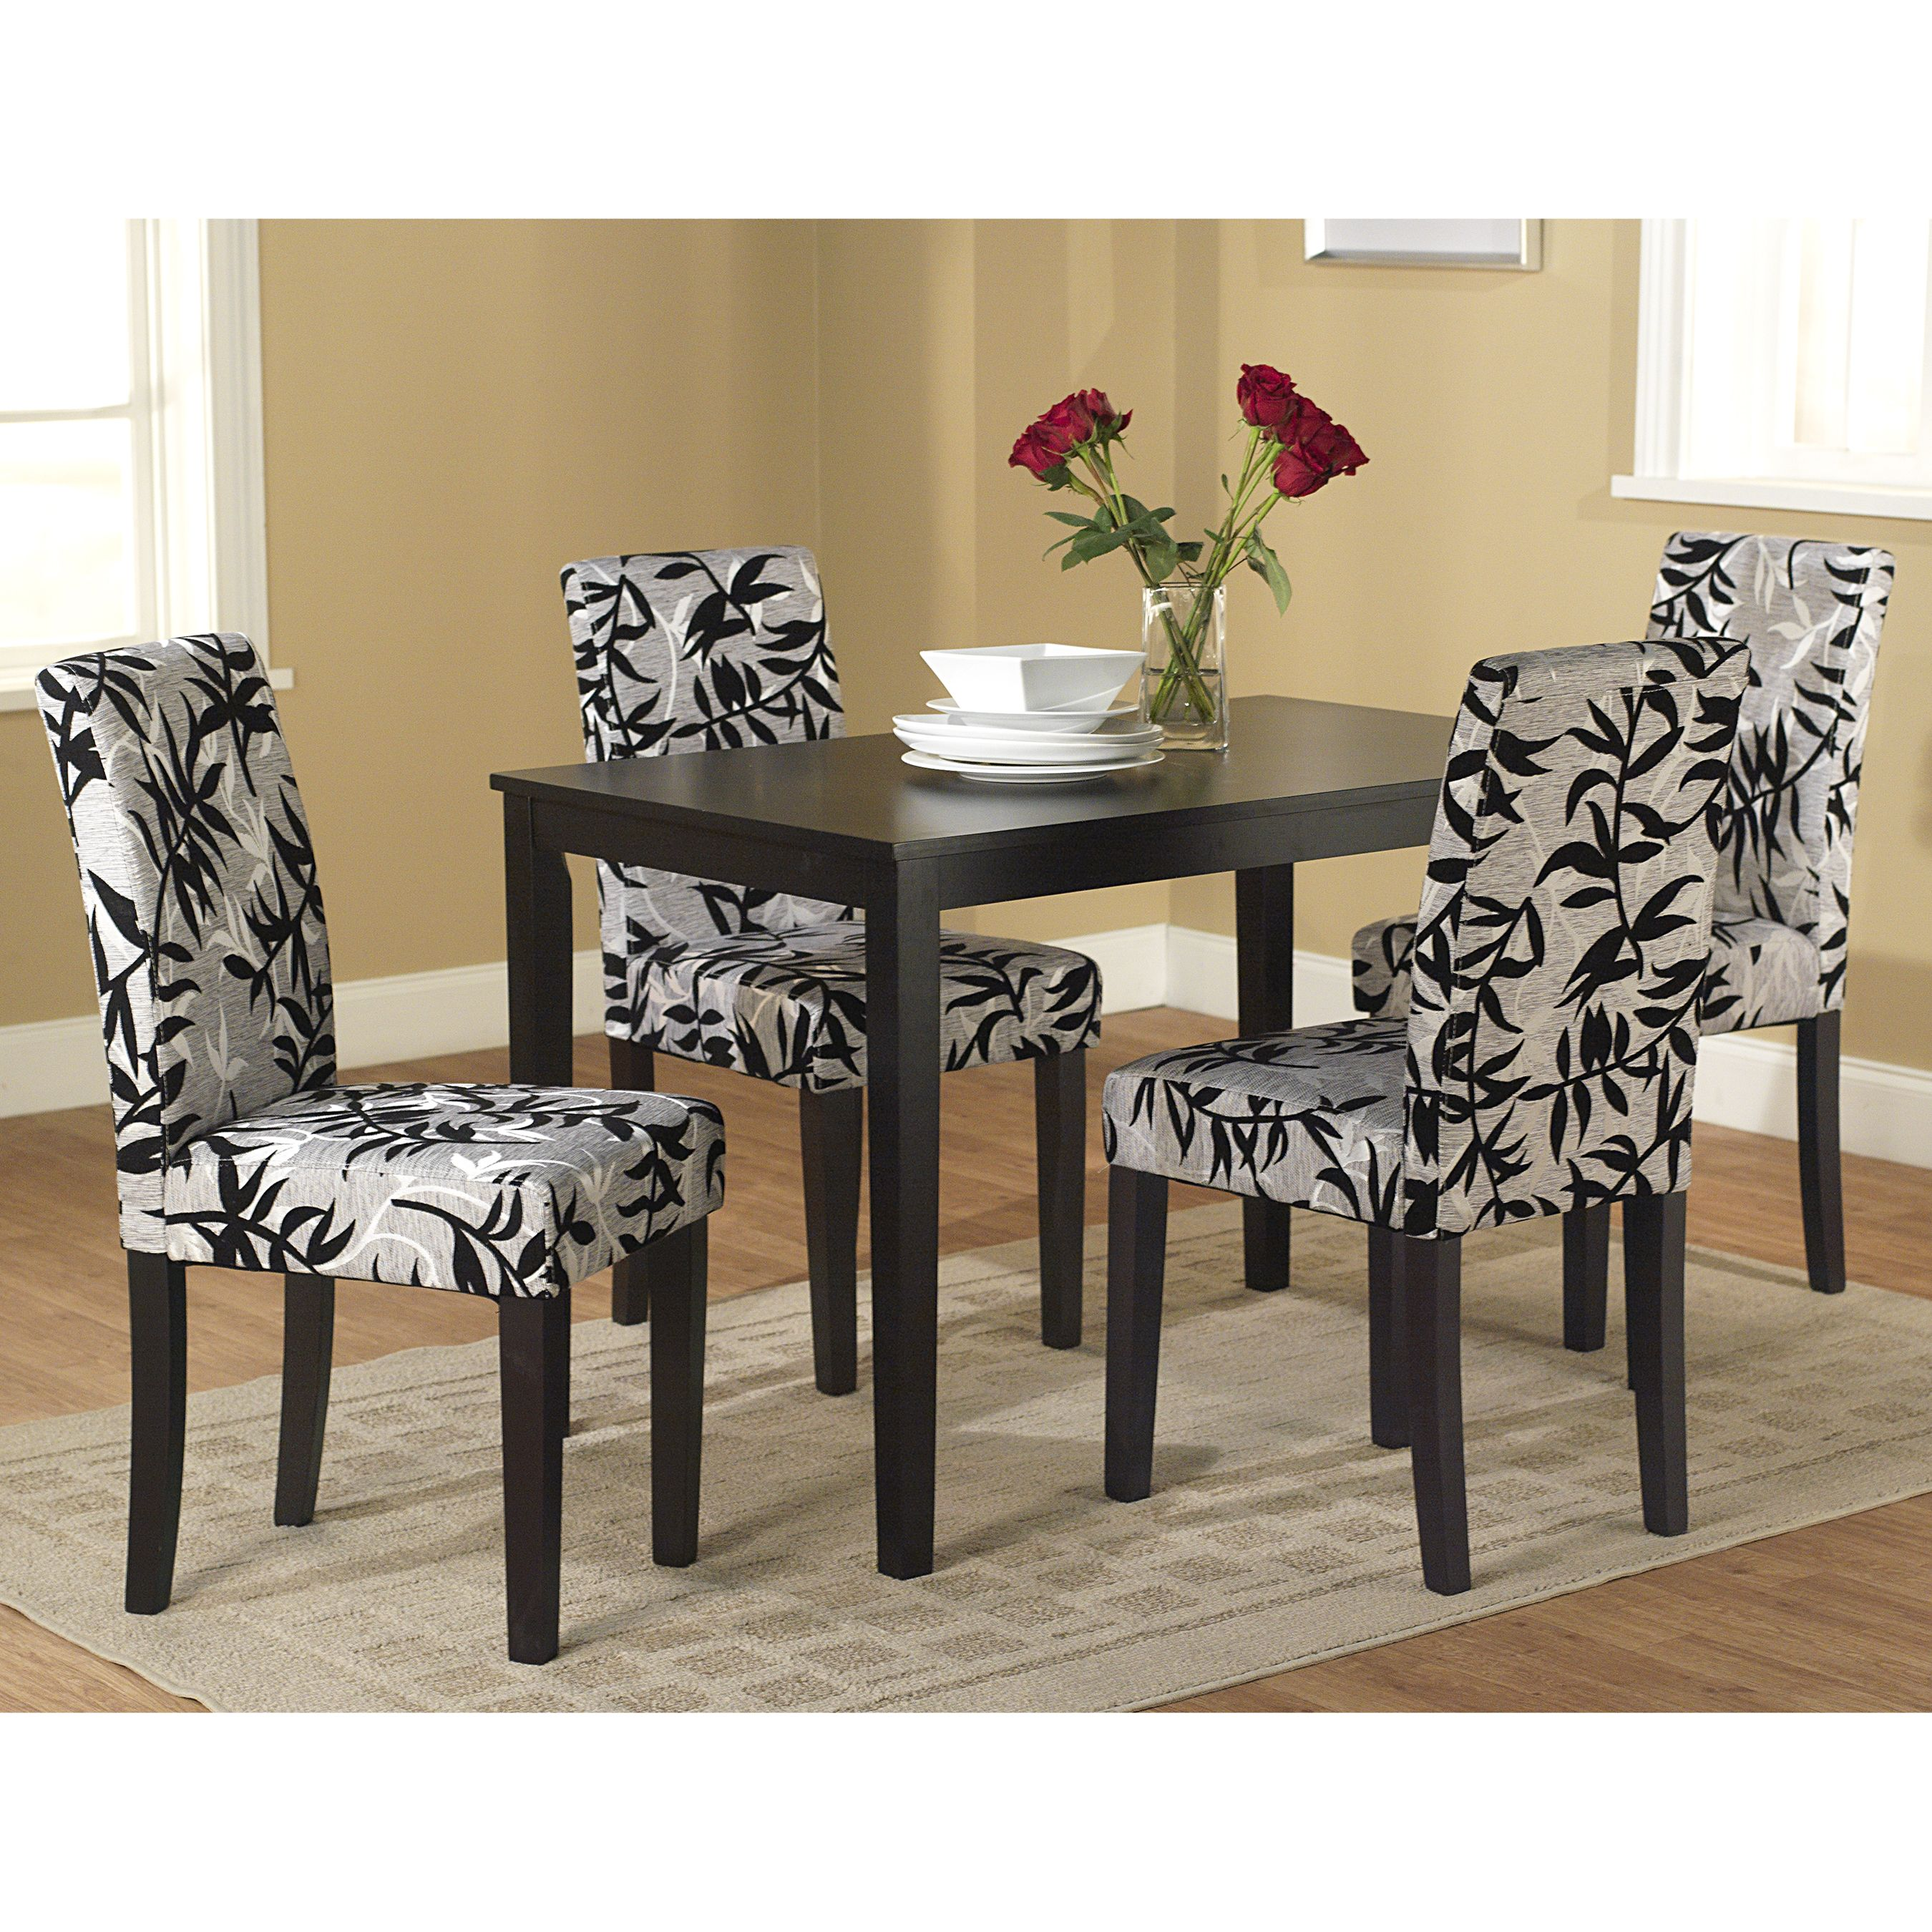 Overstock Com Online Shopping Bedding Furniture Electronics Jewelry Clothing More Dining Furniture Makeover Modern Dining Furniture Dining Furniture